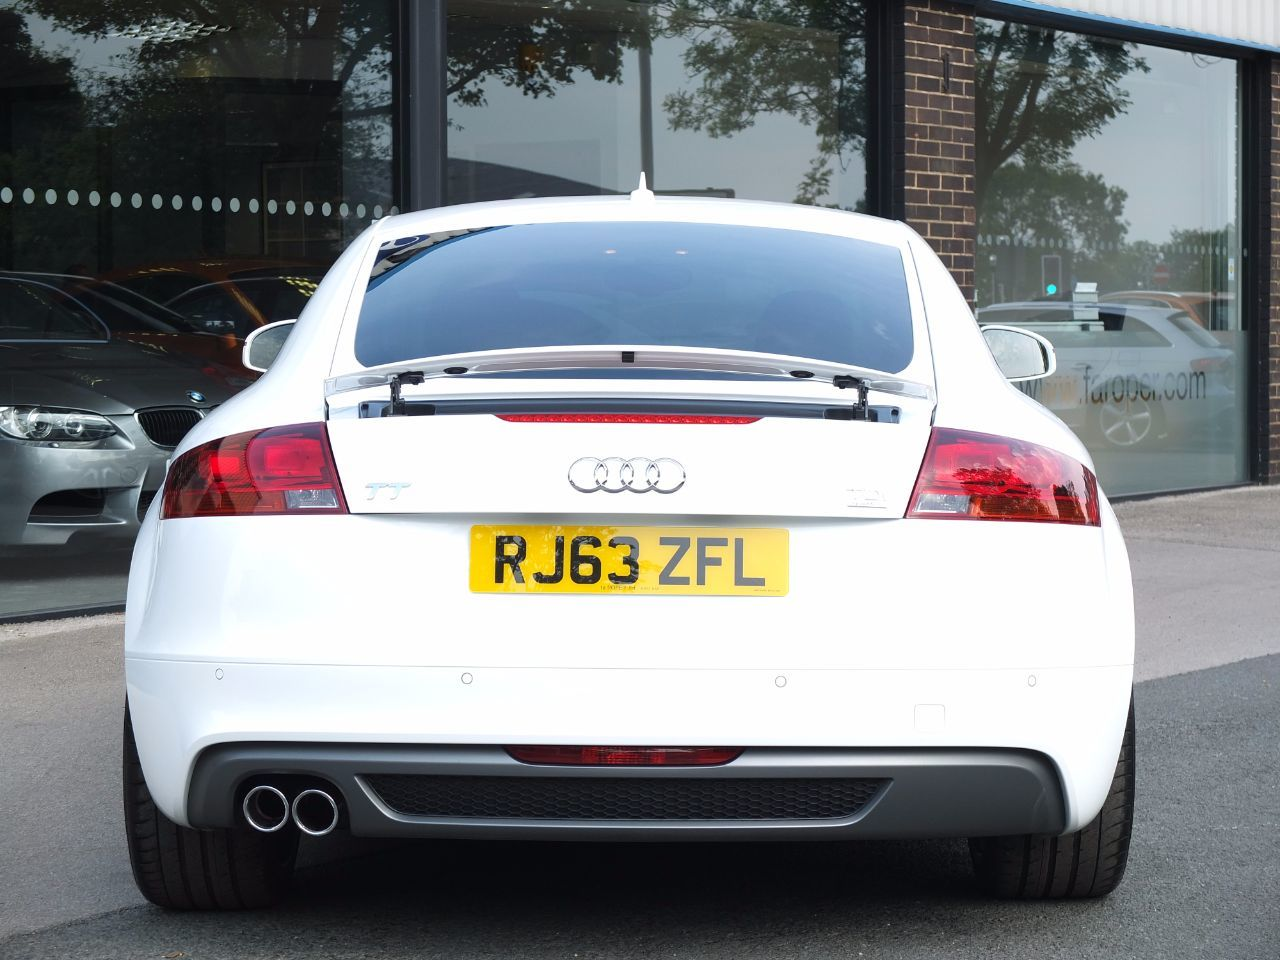 used audi tt coupe 2 0 tdi quattro black edition spec for sale in bradford west yorkshire. Black Bedroom Furniture Sets. Home Design Ideas